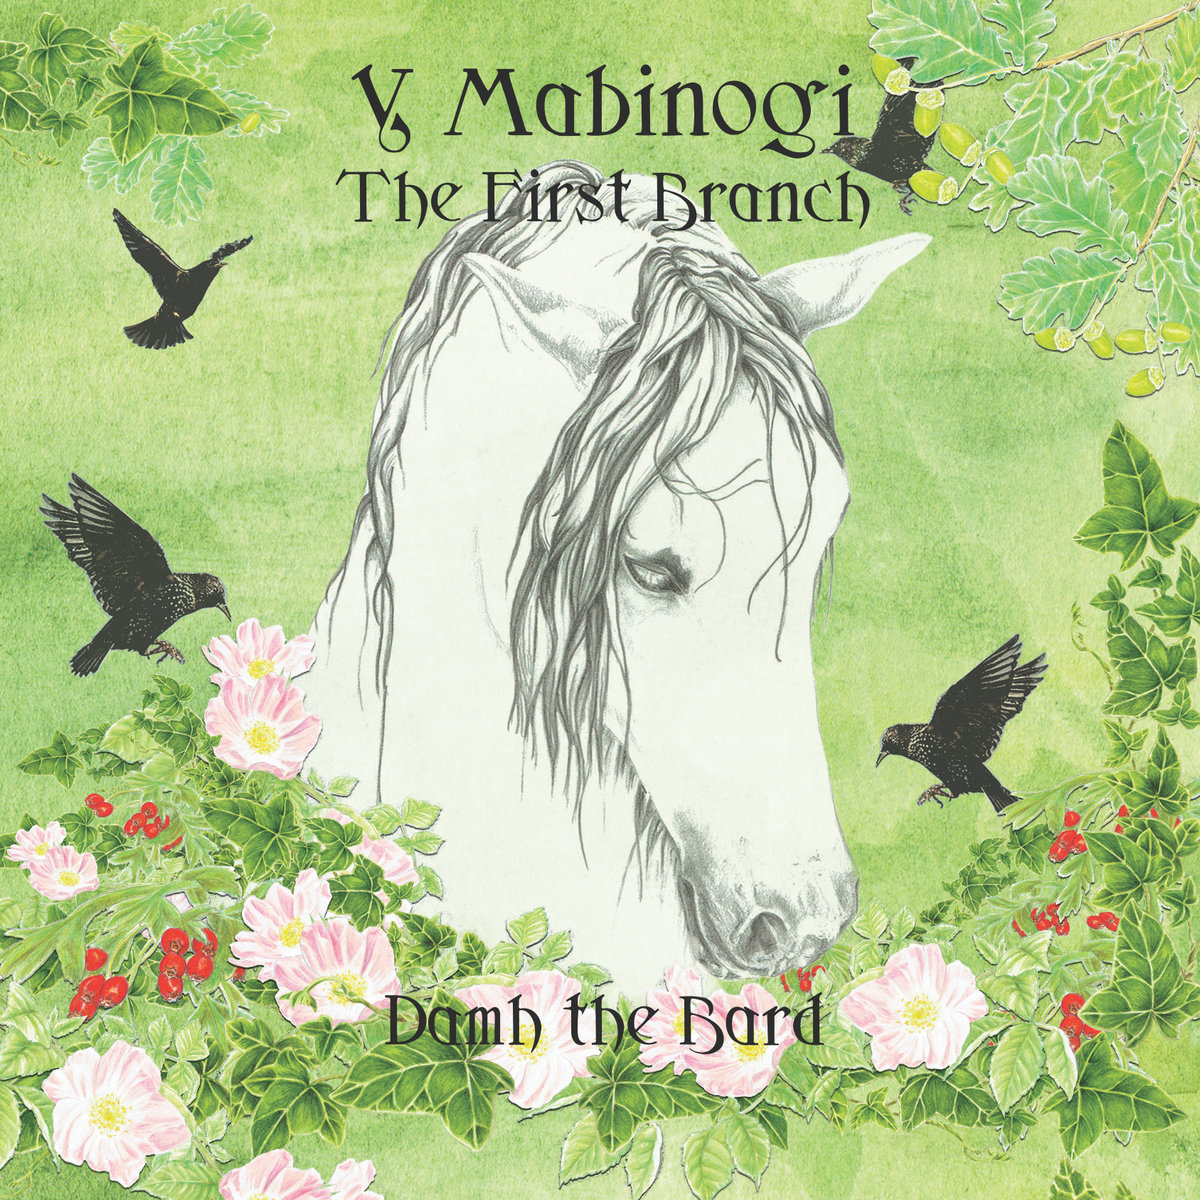 Image result for y mabinogi damh the bard